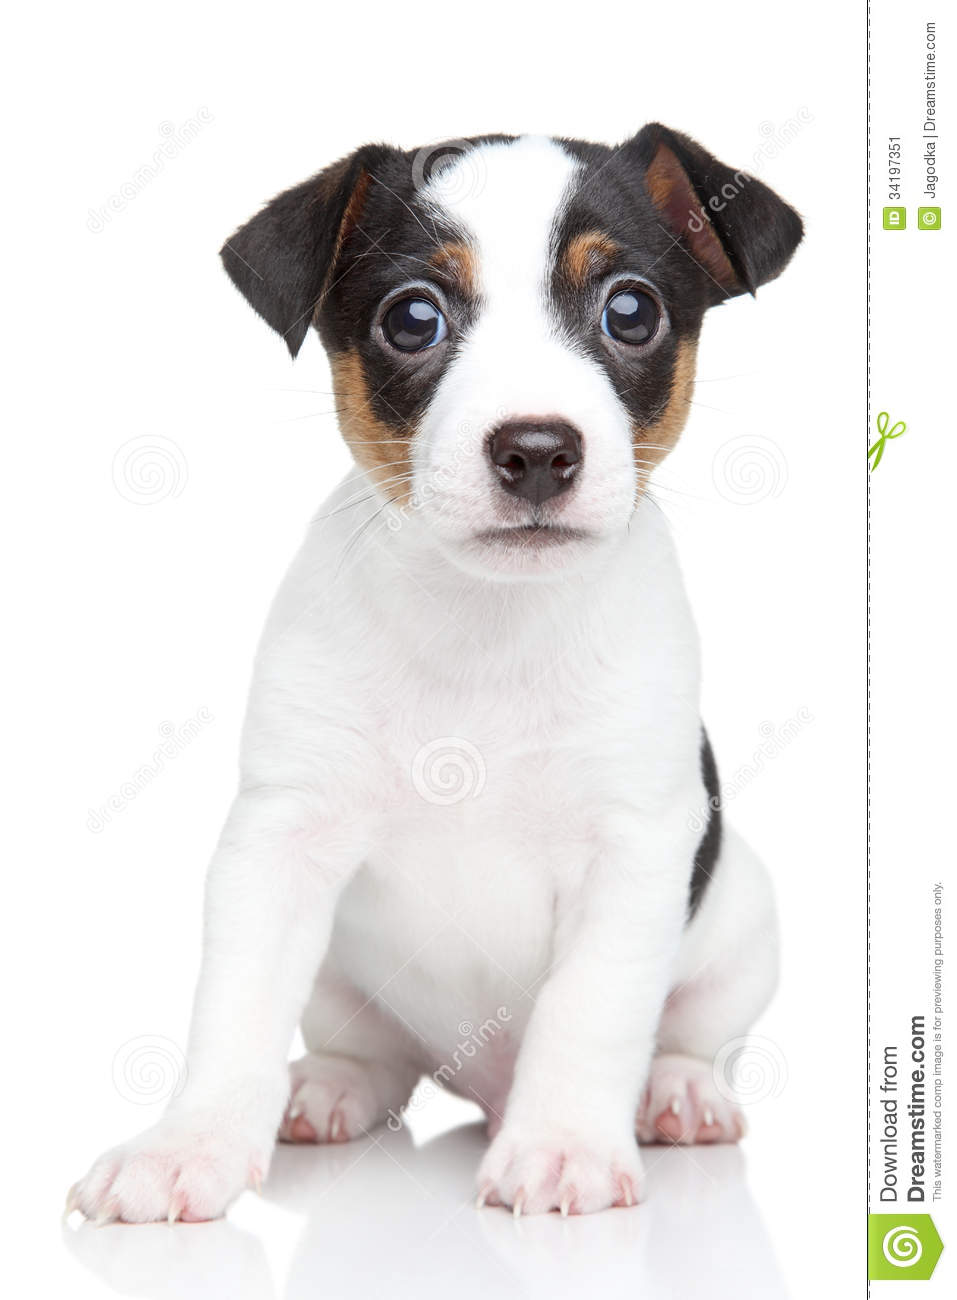 Cute Jack Russell terrier puppy sits on a white background.